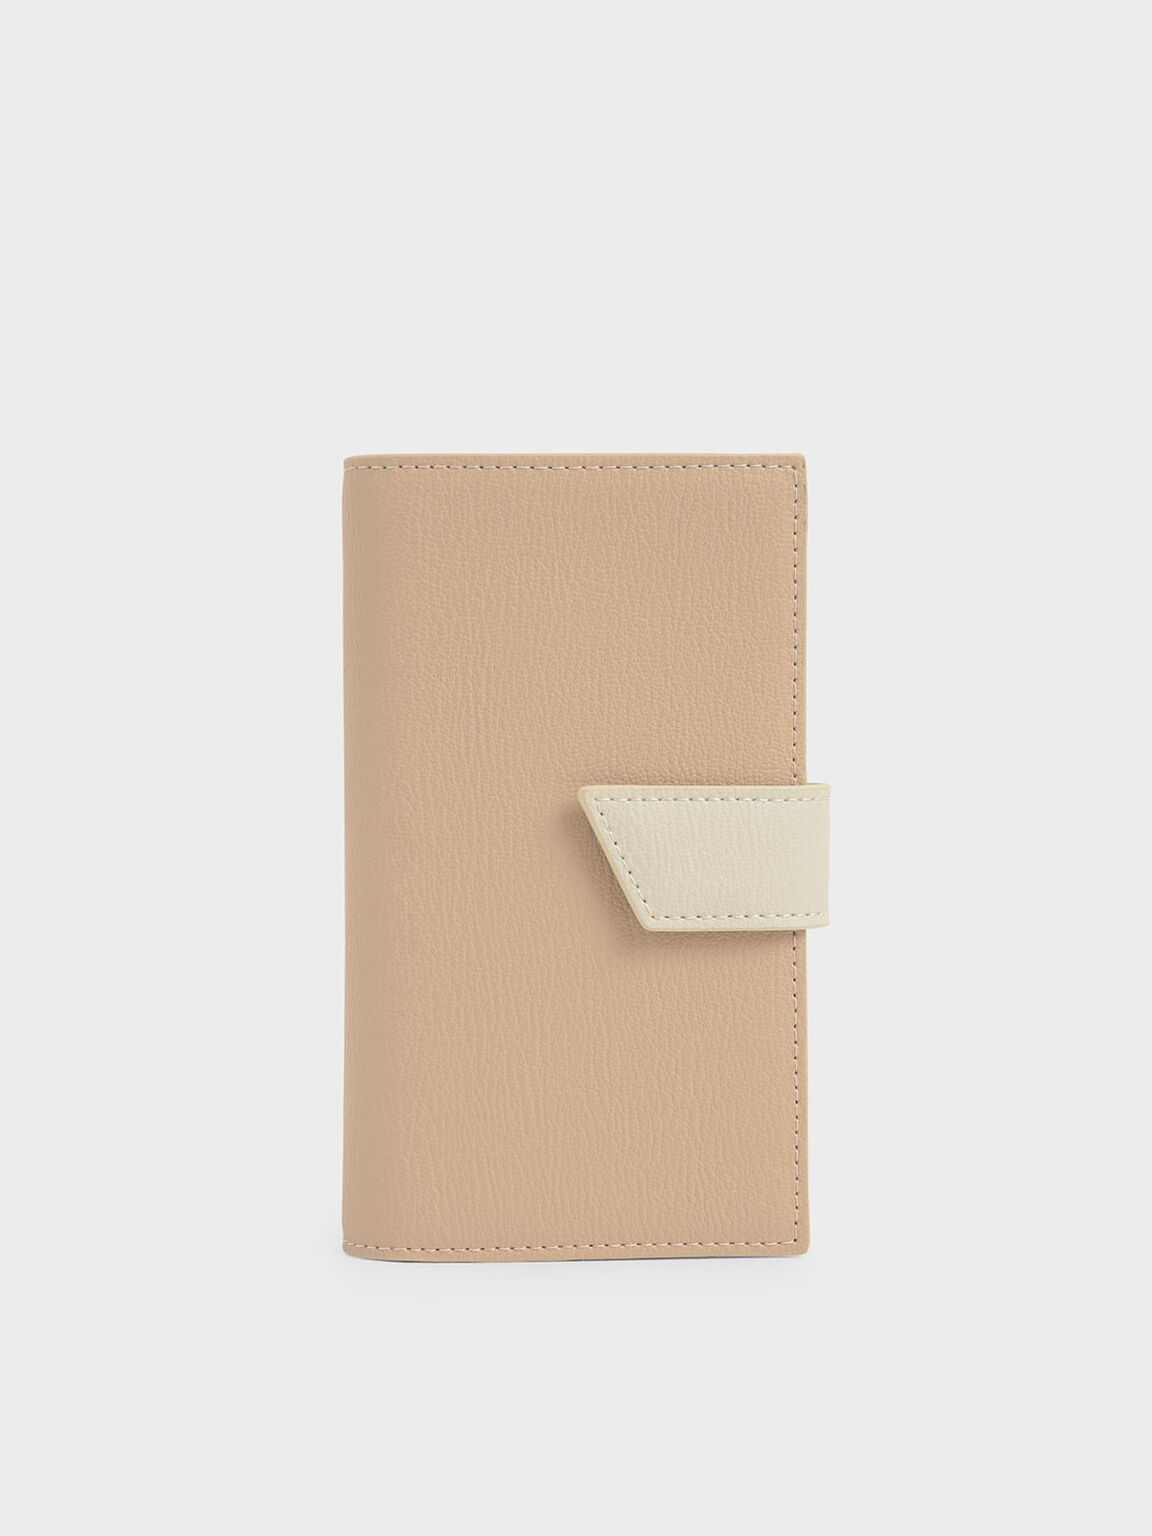 Snap Button Wallet, Beige, hi-res